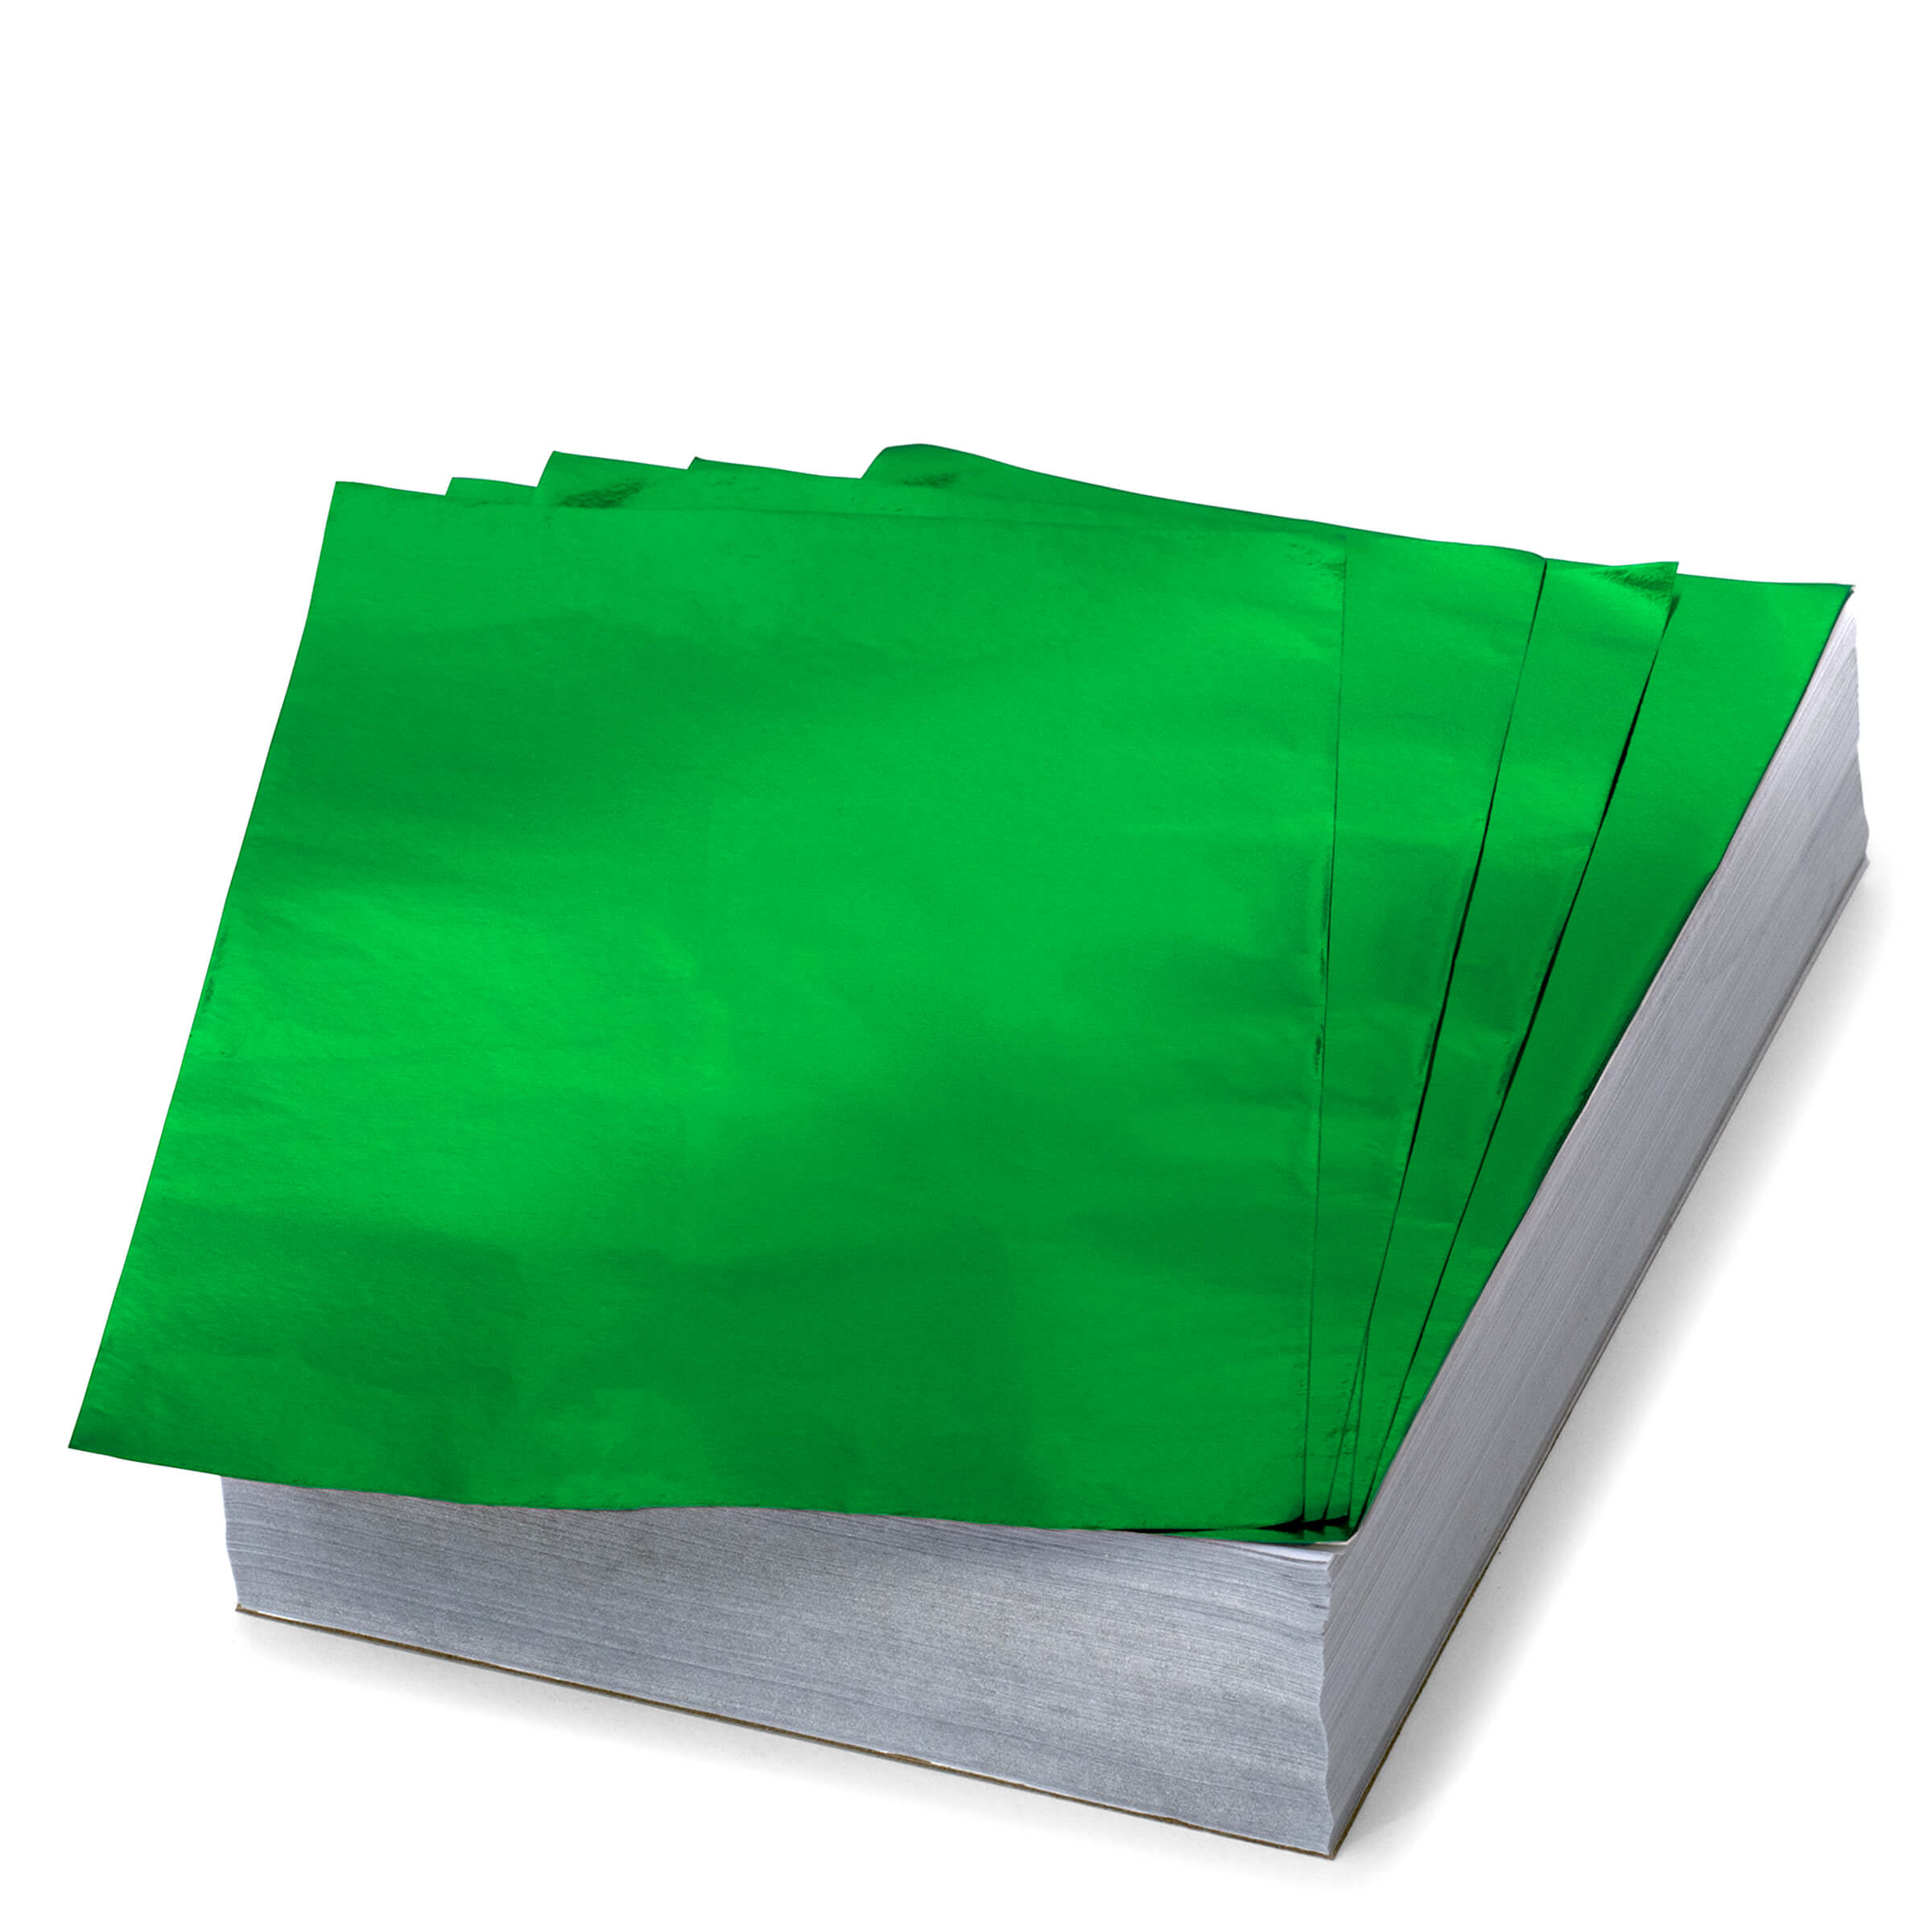 AL-58-45EG-a-5x8-smooth-foil-x-light-emerald-green-l.jpg